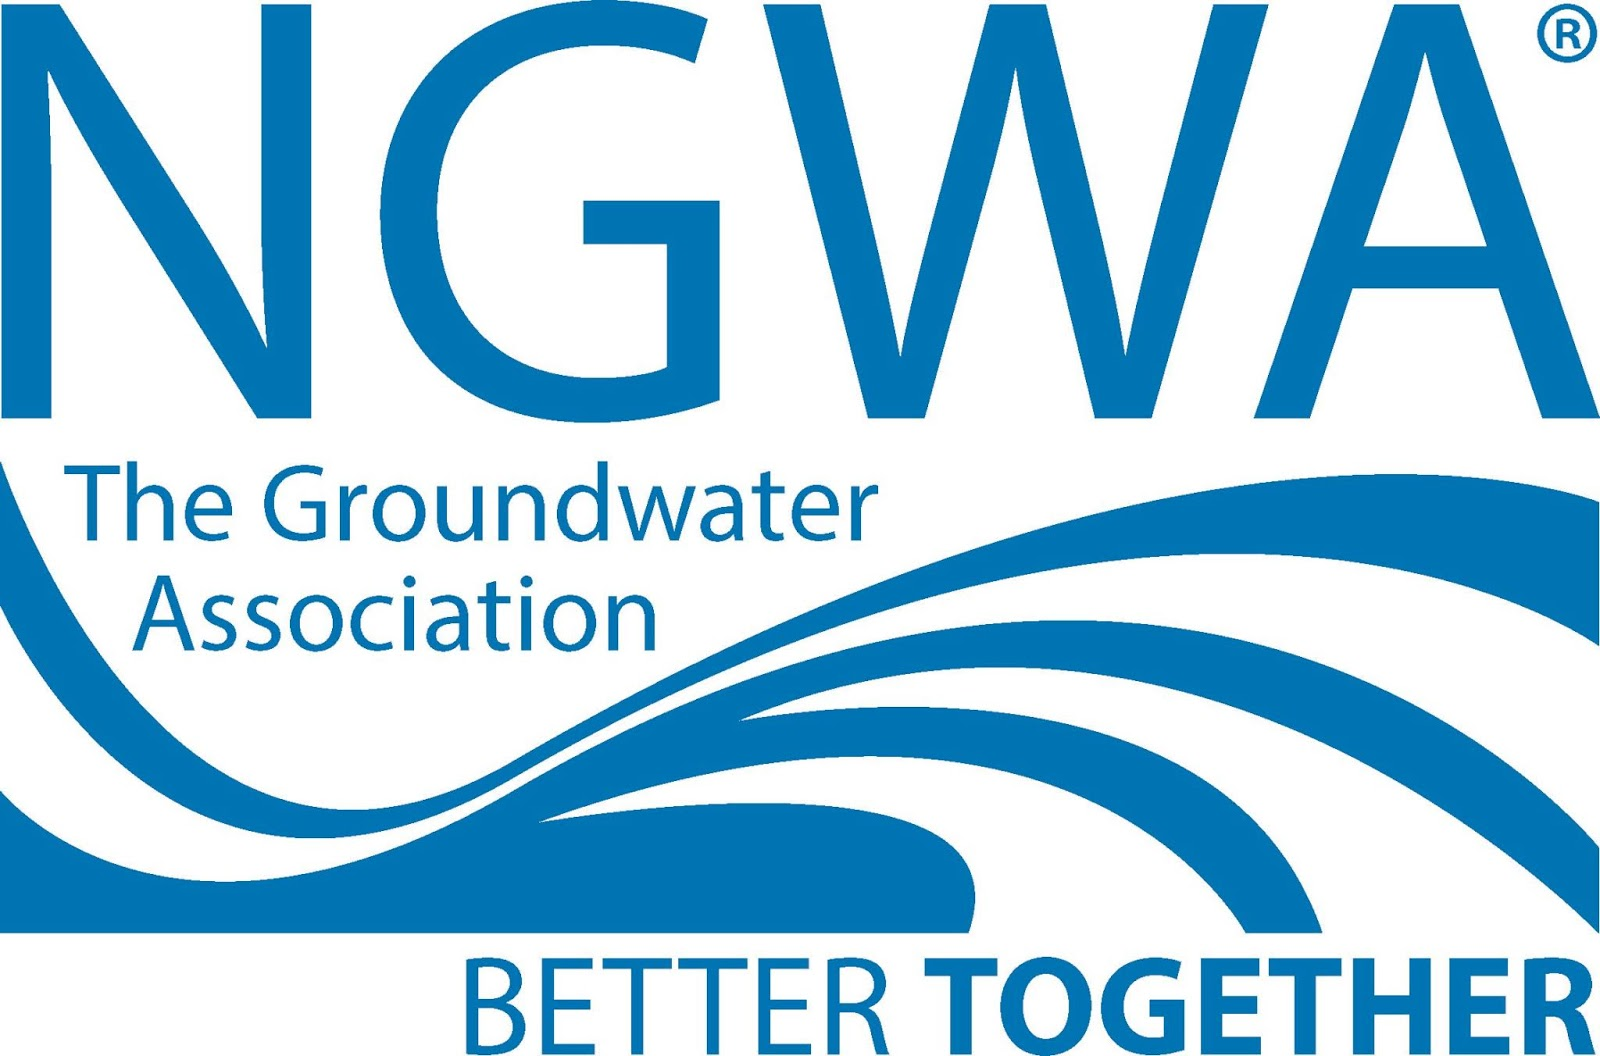 through joint networks provide new tools and resources for our constituents and haven an even bigger collective impact on behalf of groundwater